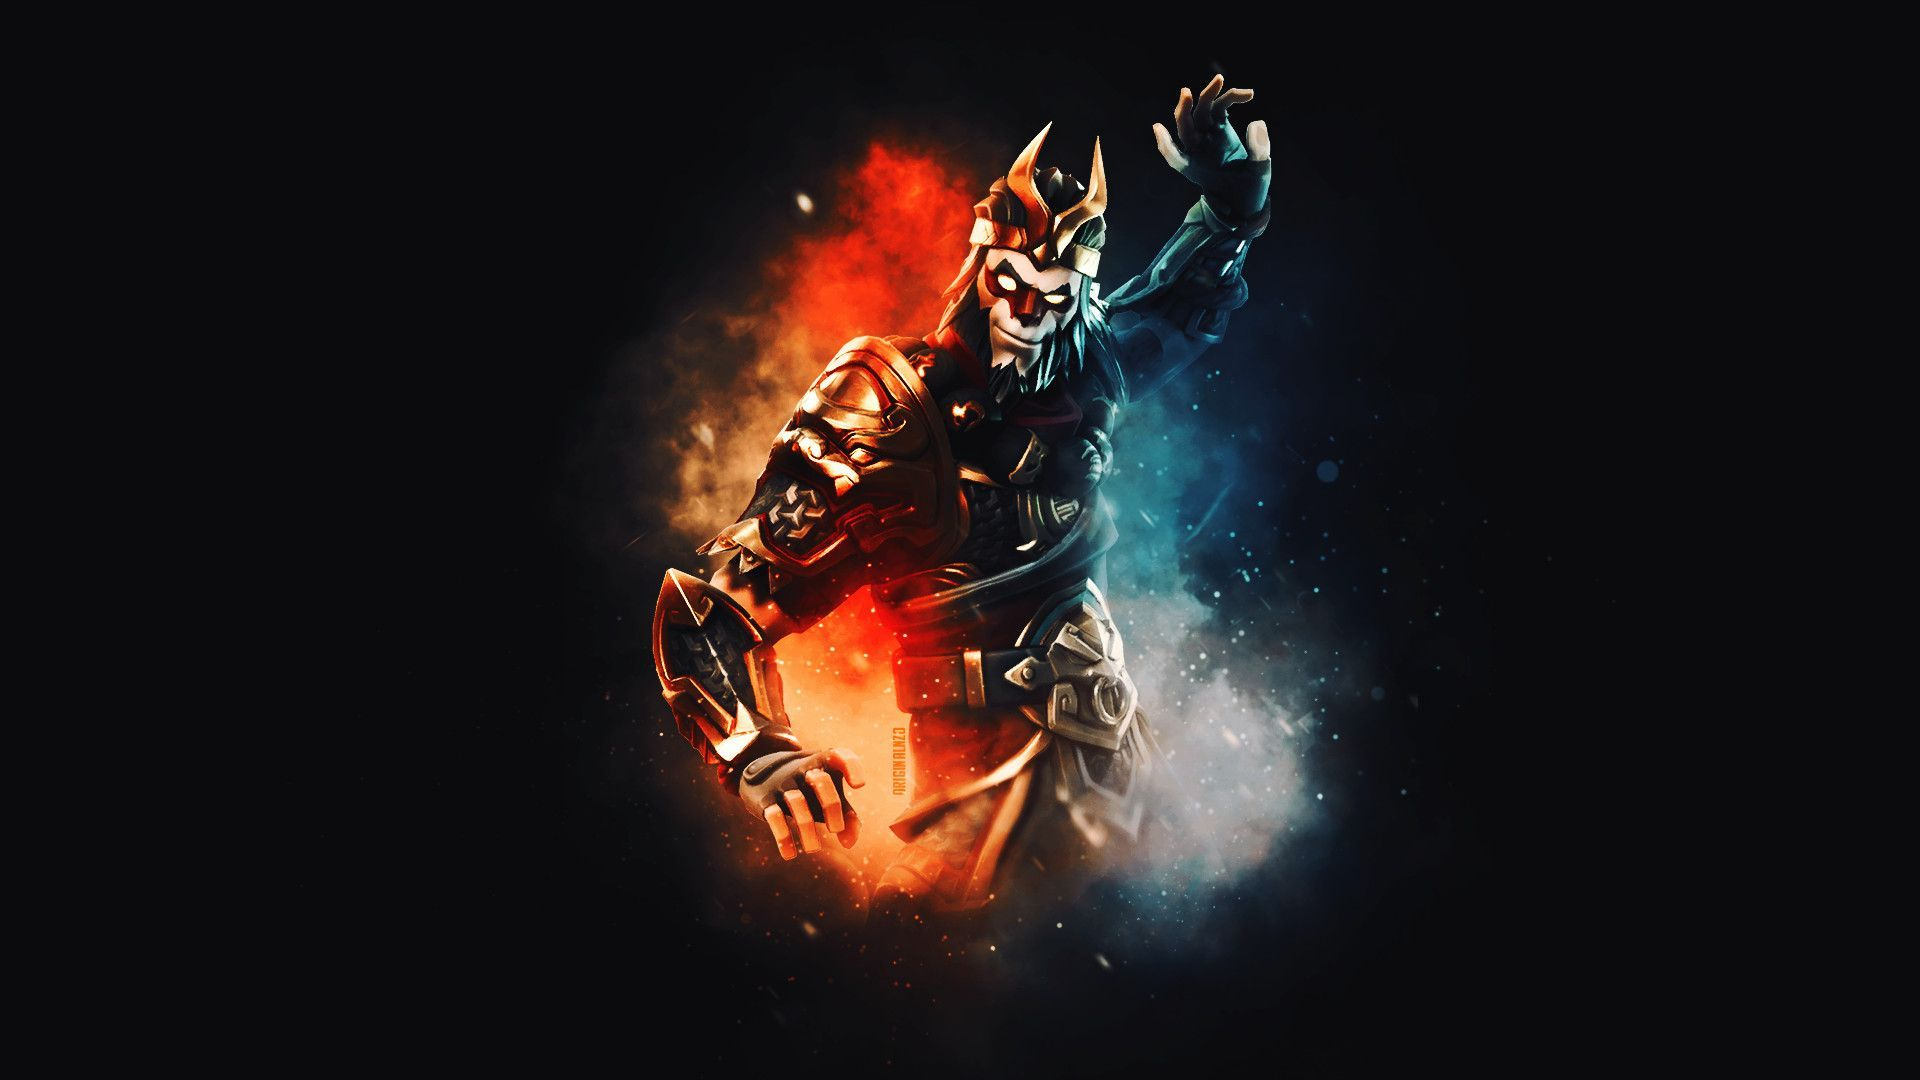 1920x1080 Fortnite Thanos Wallpaper Dark Voyager Wallpaper Edit News For Pro Cool Wallpapers For Phones Iphone Wallpaper Images Game Wallpaper Iphone